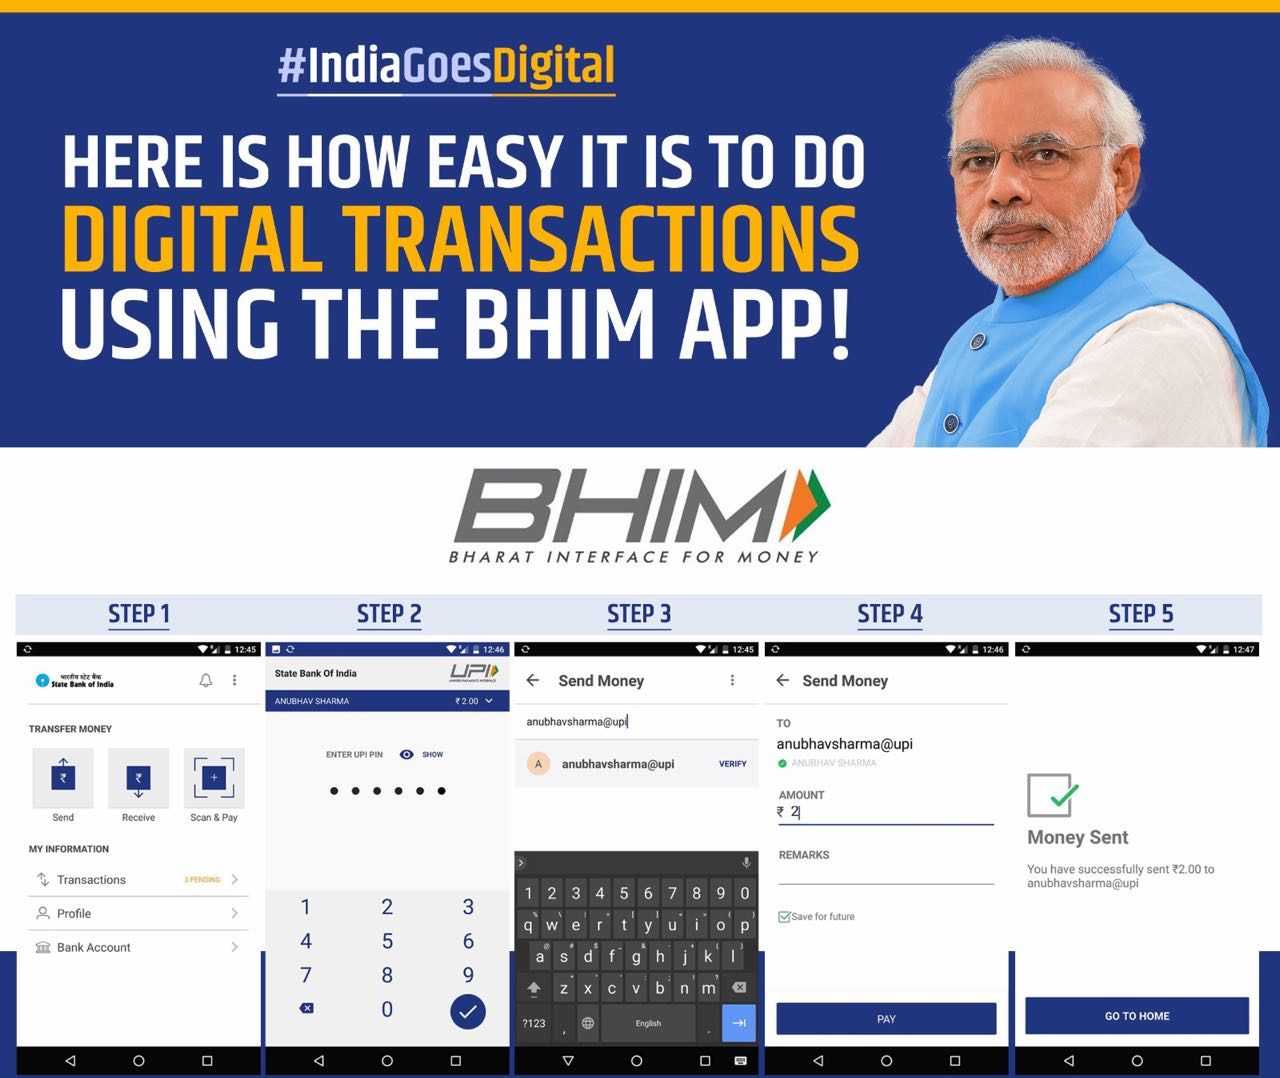 How to make and receive payments digitally using BHIM app